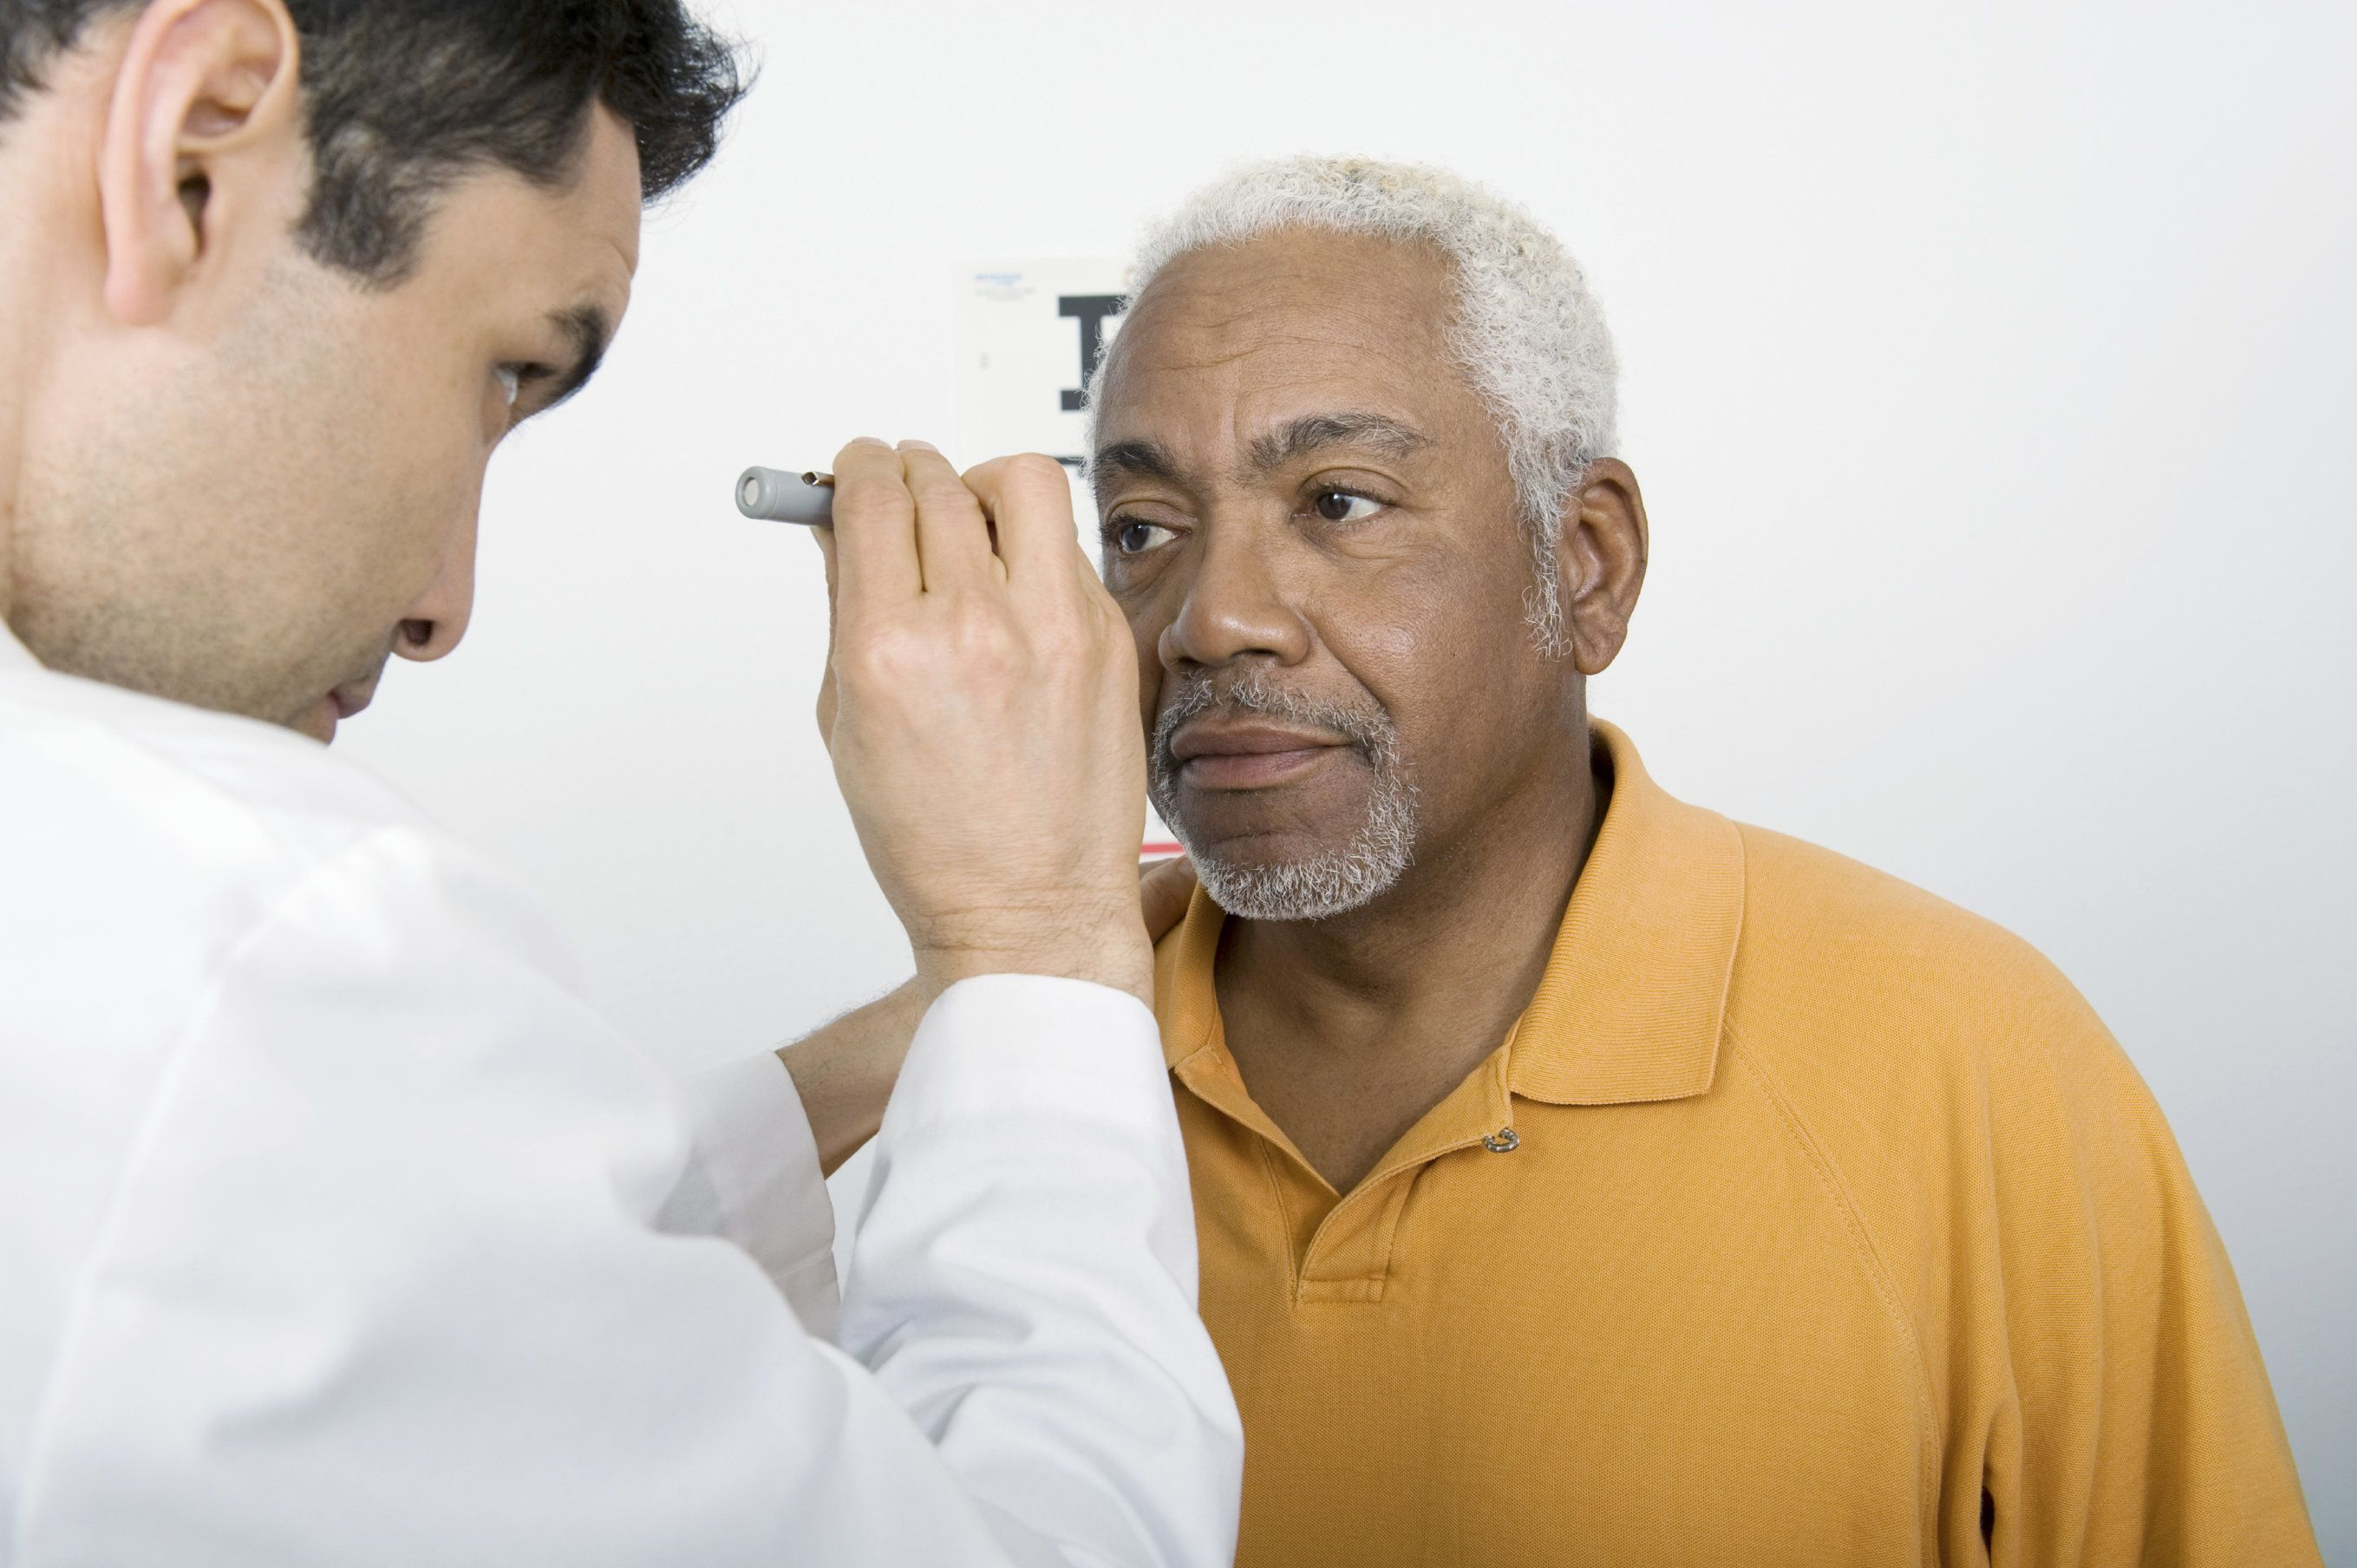 An old man undergoing an eye exam